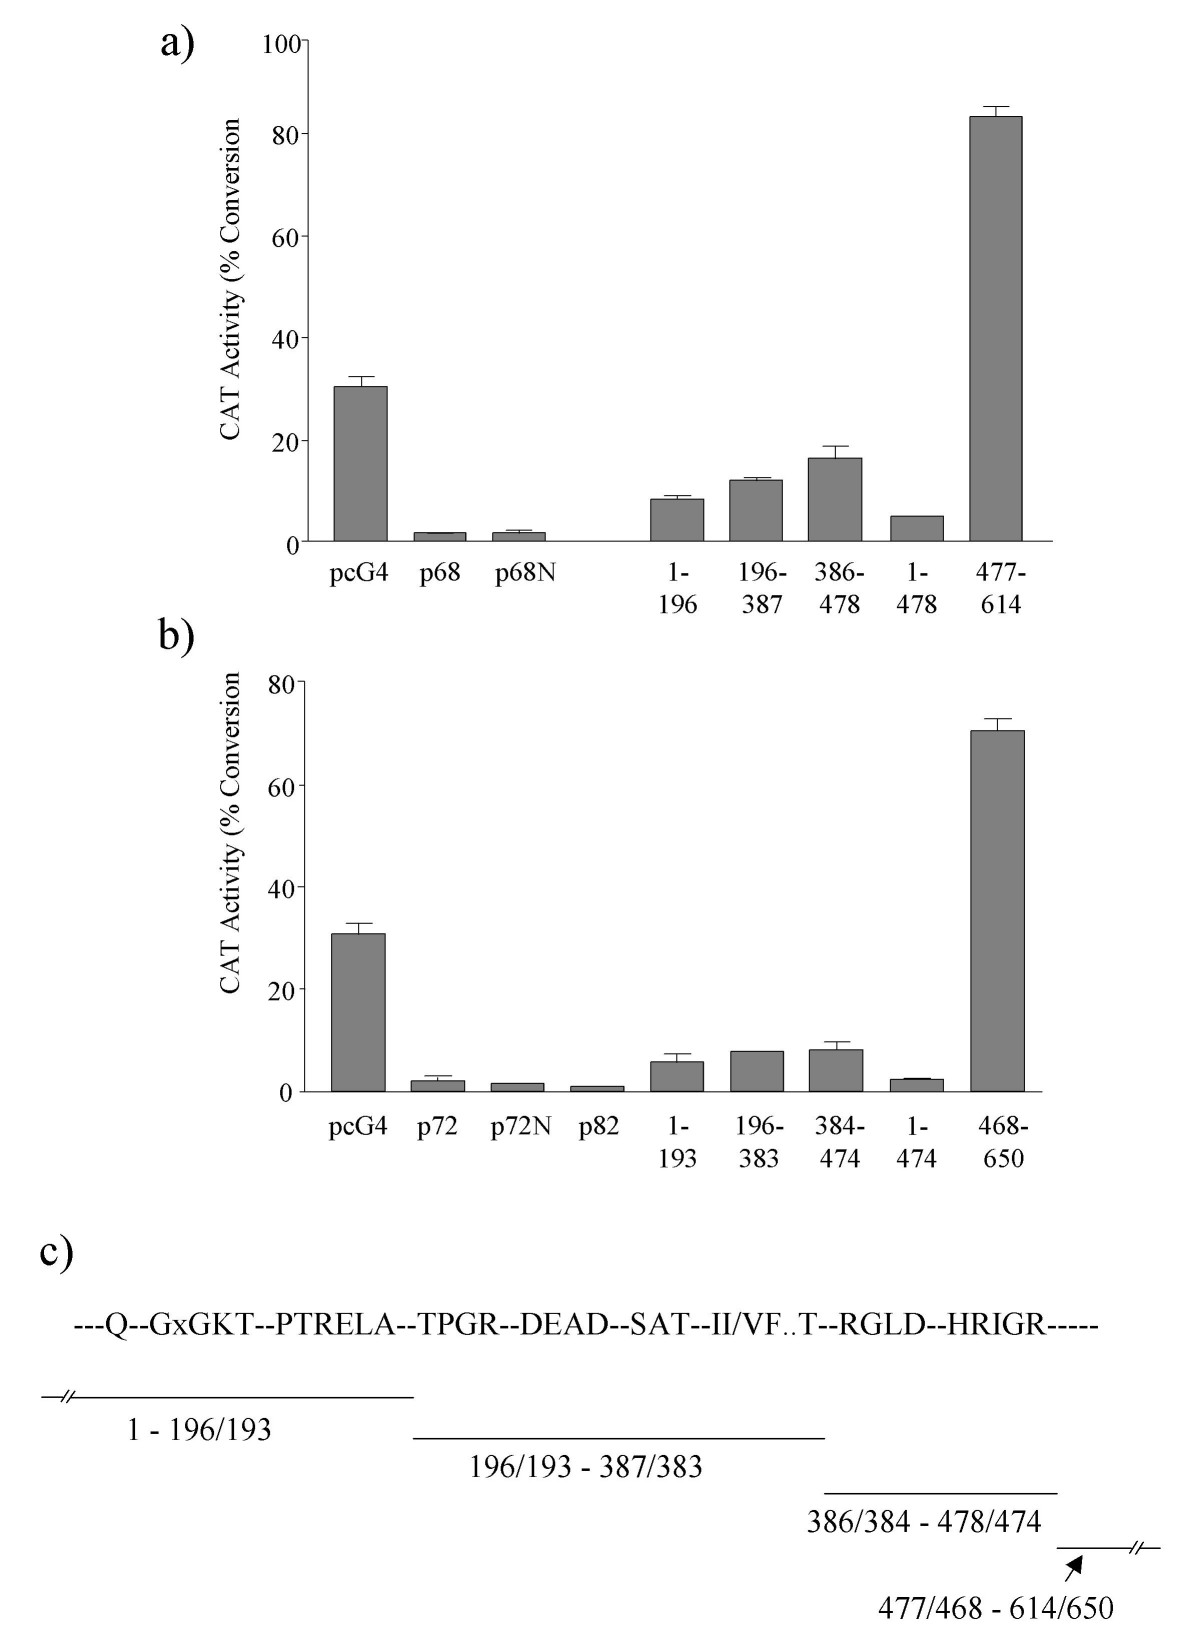 http://static-content.springer.com/image/art%3A10.1186%2F1471-2199-5-11/MediaObjects/12867_2004_Article_56_Fig3_HTML.jpg